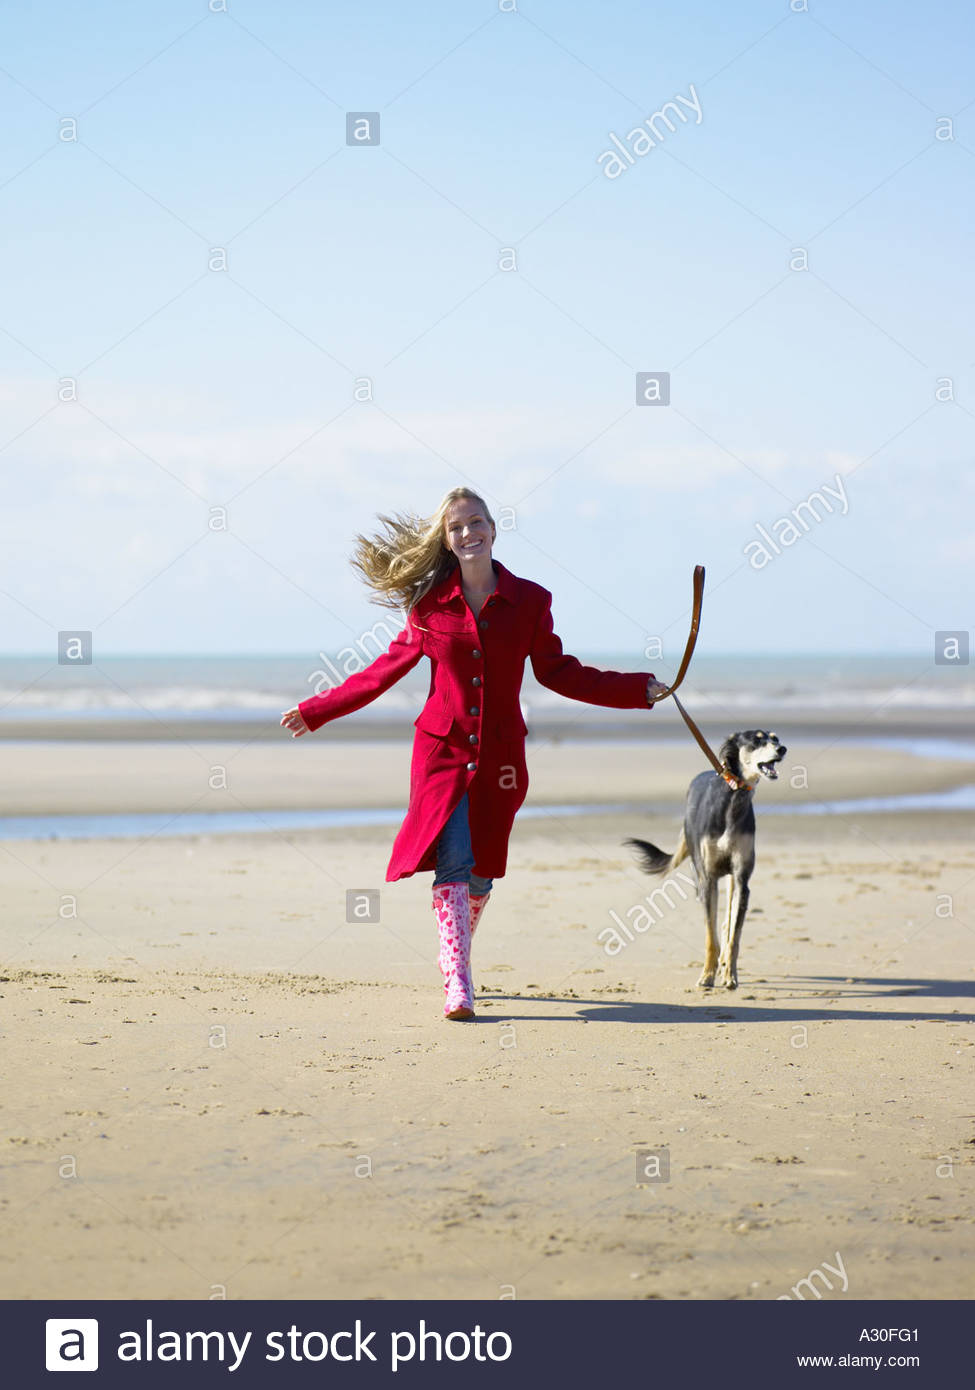 Woman walking dog on beach - Stock Image